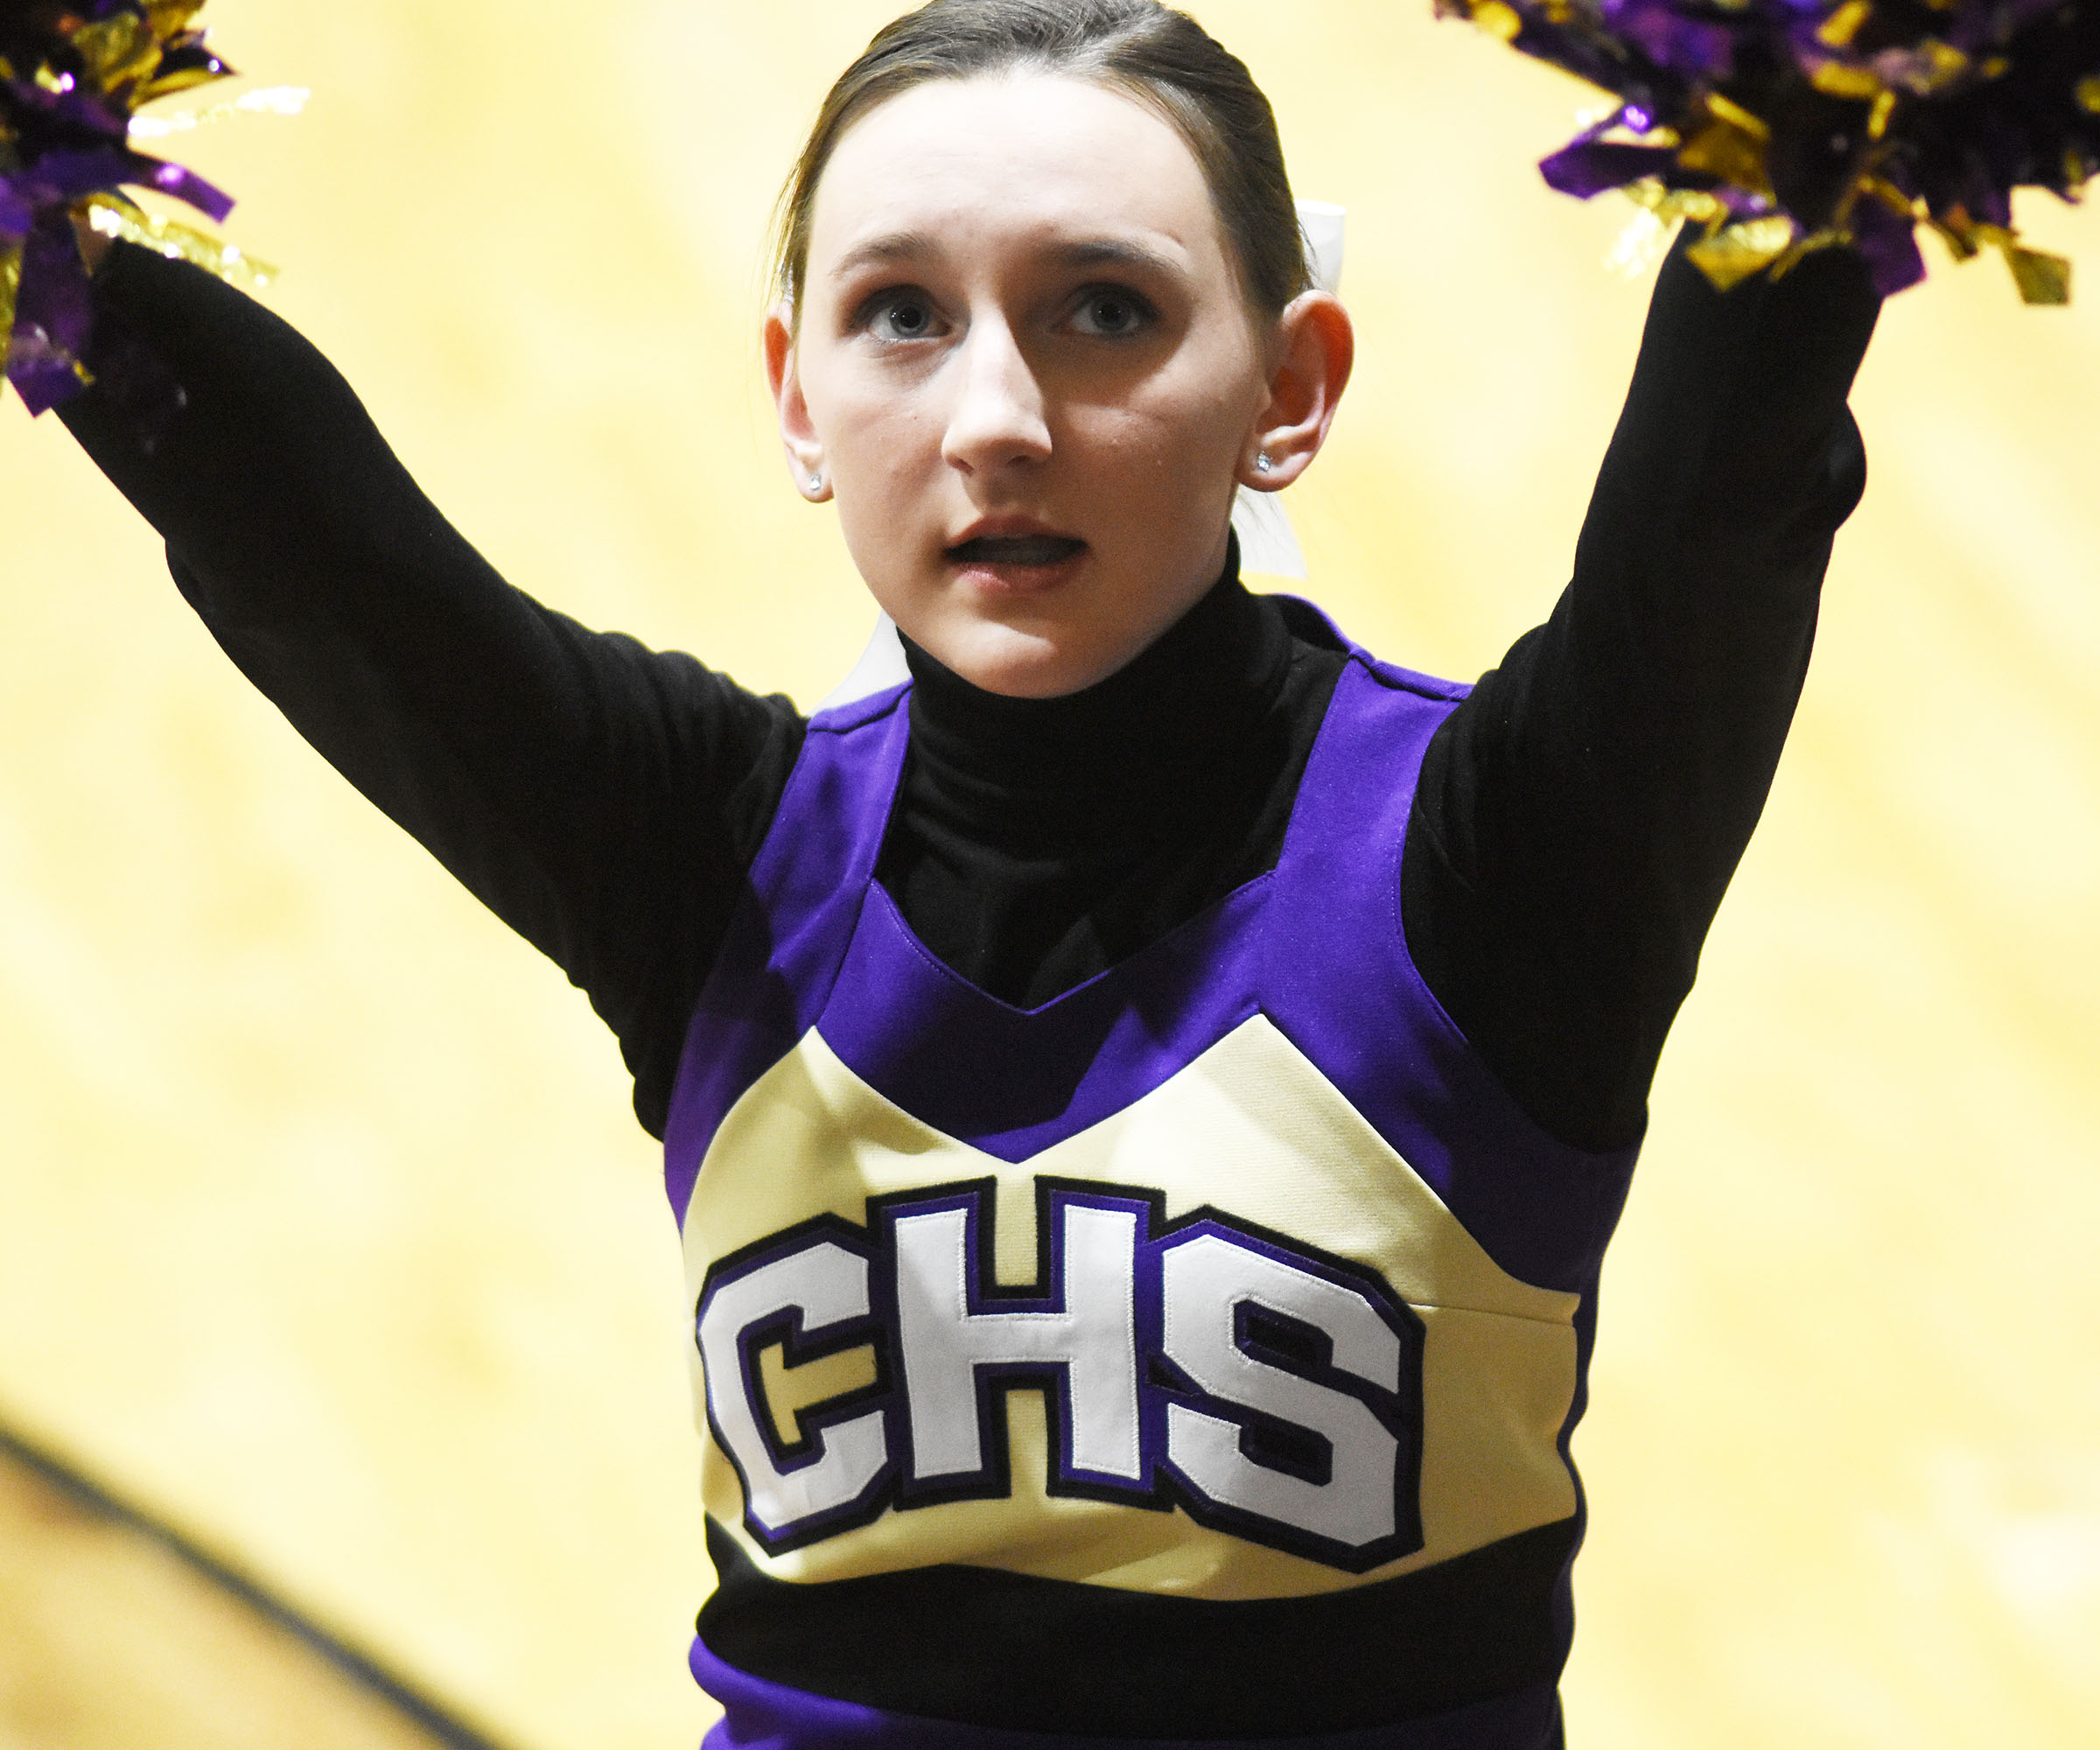 CHS sophomore Zoe McAninch cheers for the Eagles.